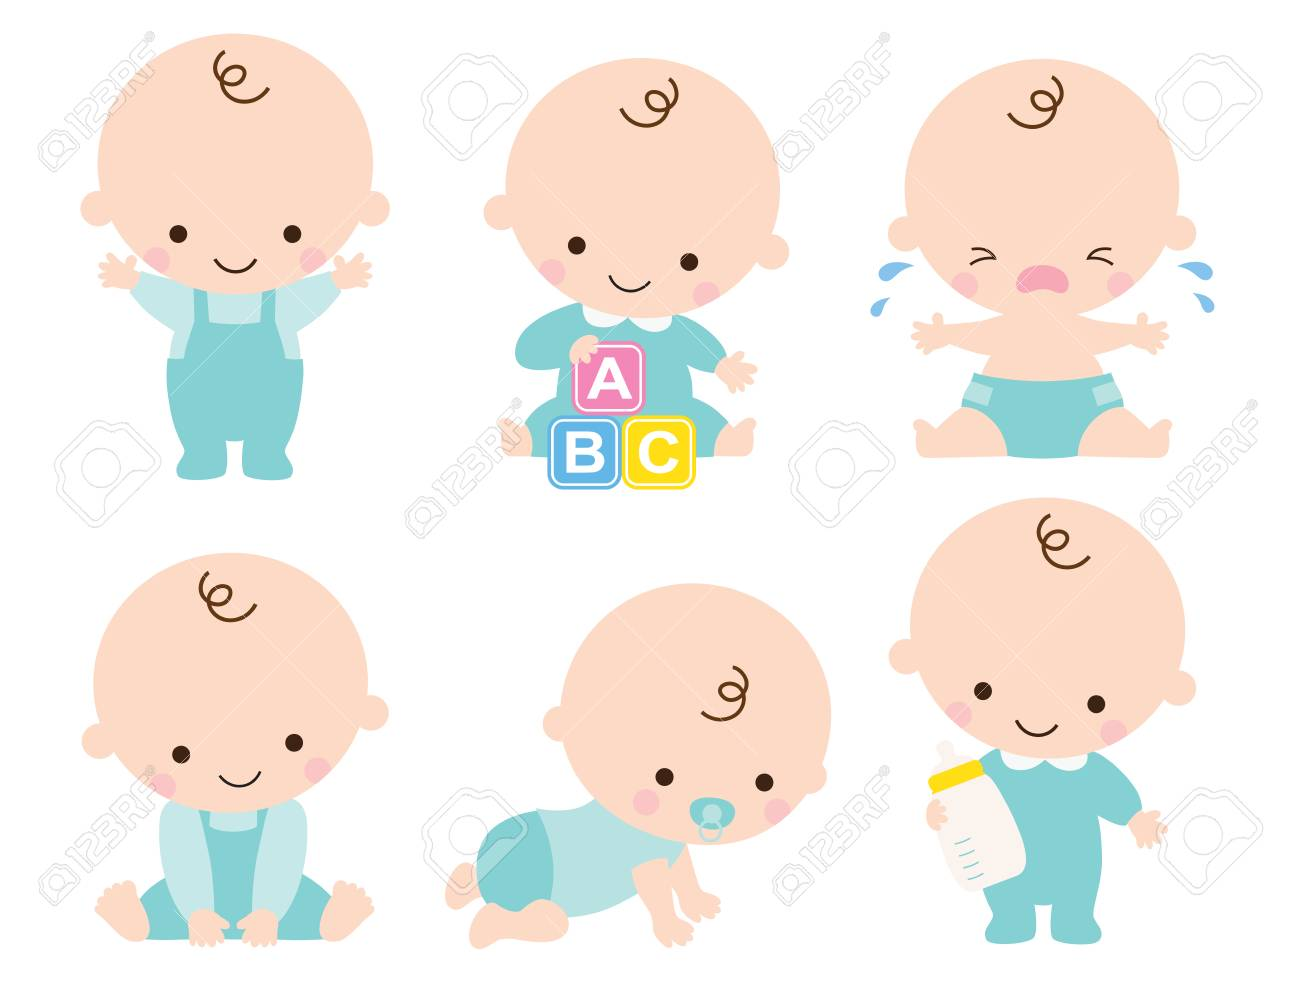 Cute baby or toddler boy illustration in various poses such as standing, sitting, crying, playing, crawling. - 91742460